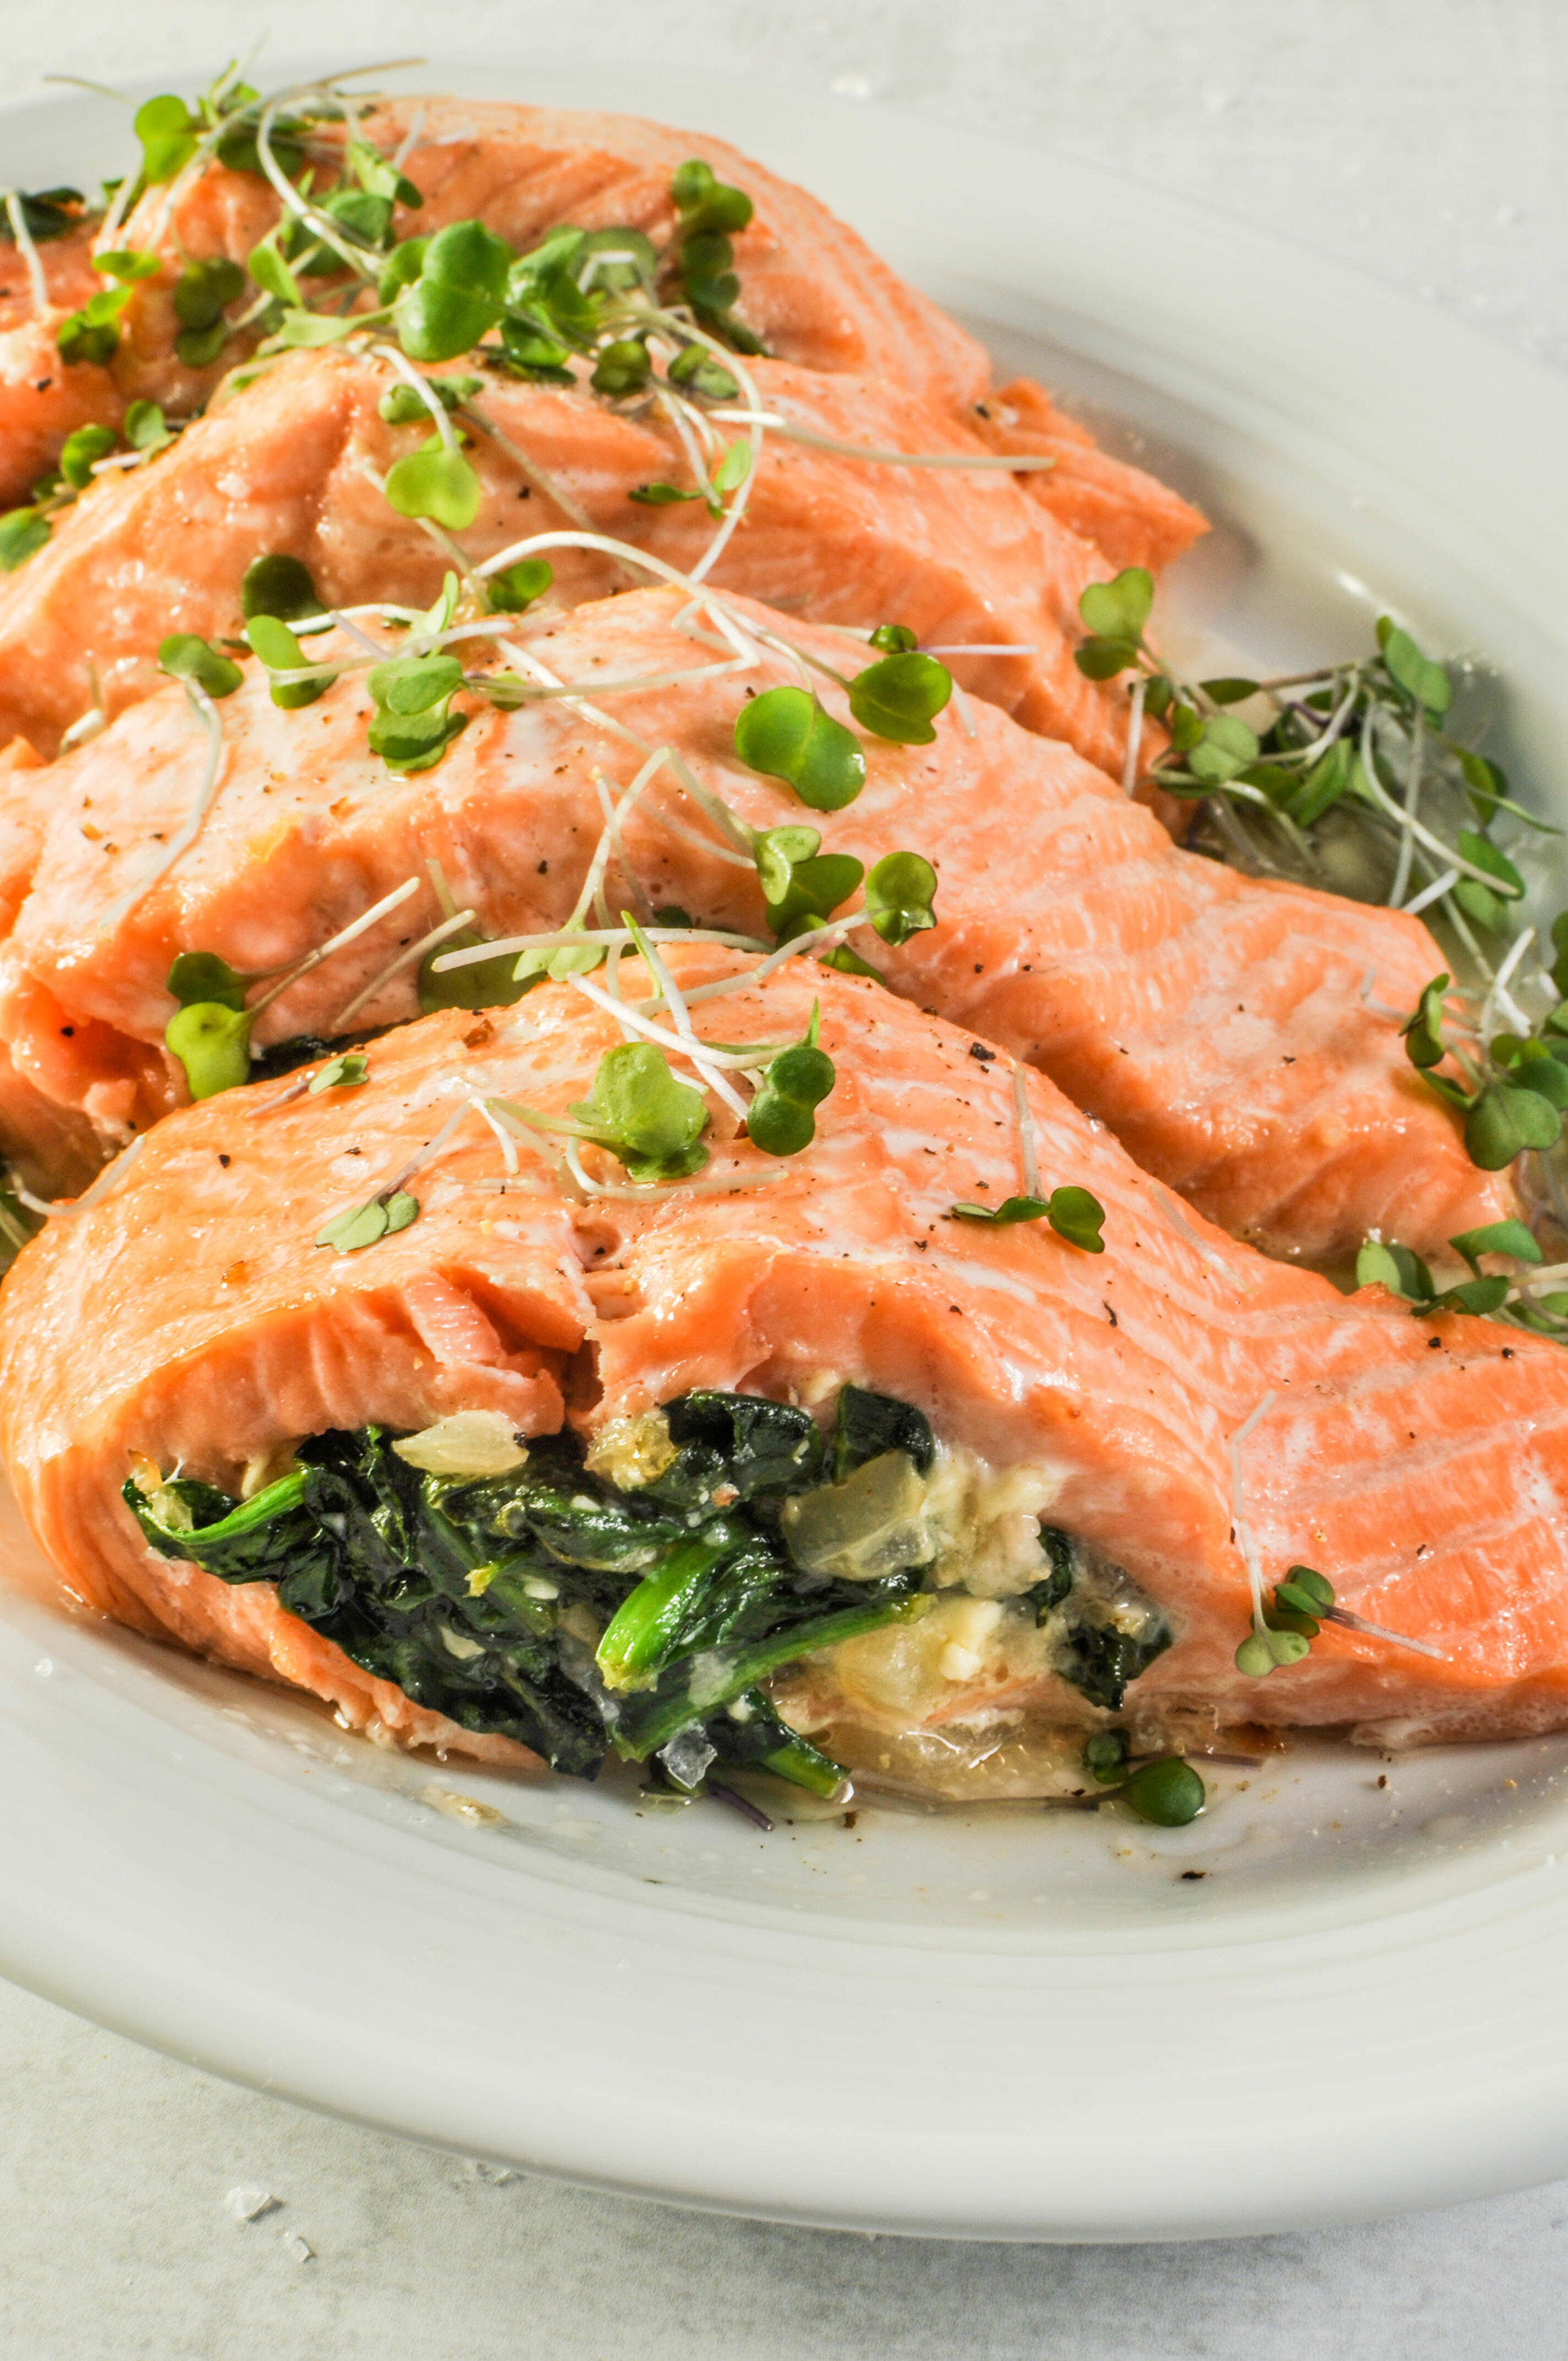 Spinach & Feta Stuffed Salmon | a delicious, weeknight meal that's ready in 20 minutes #salmon #recipe